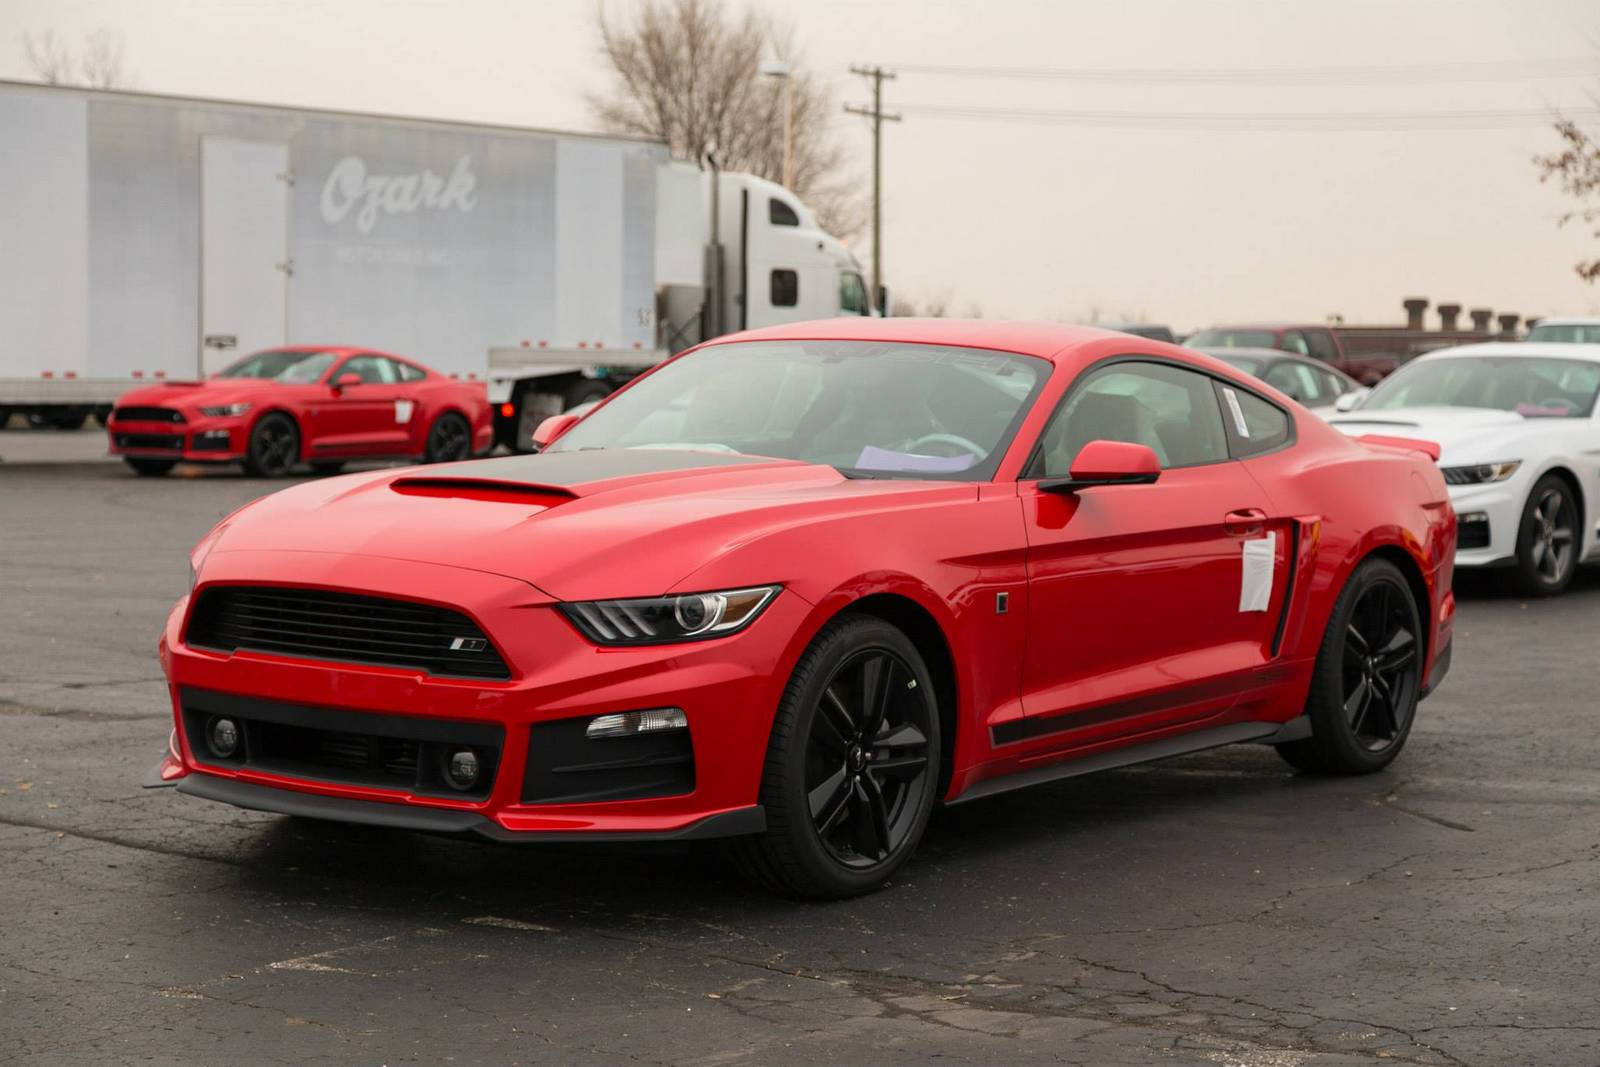 roush reveals first batch of production ready 2015 rs mustangs gtspirit. Black Bedroom Furniture Sets. Home Design Ideas